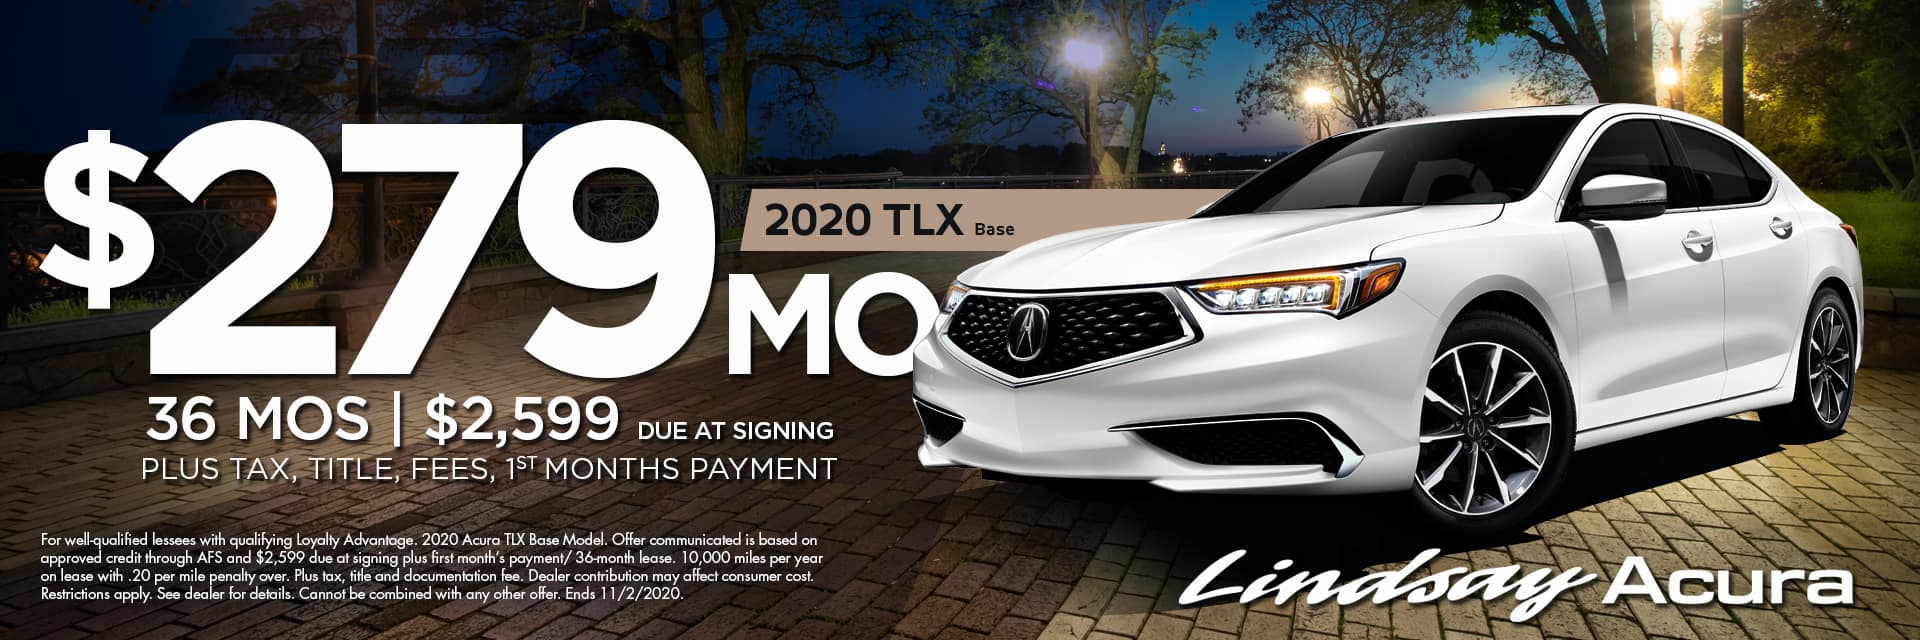 TLX_279MO_SEPT20_NEW